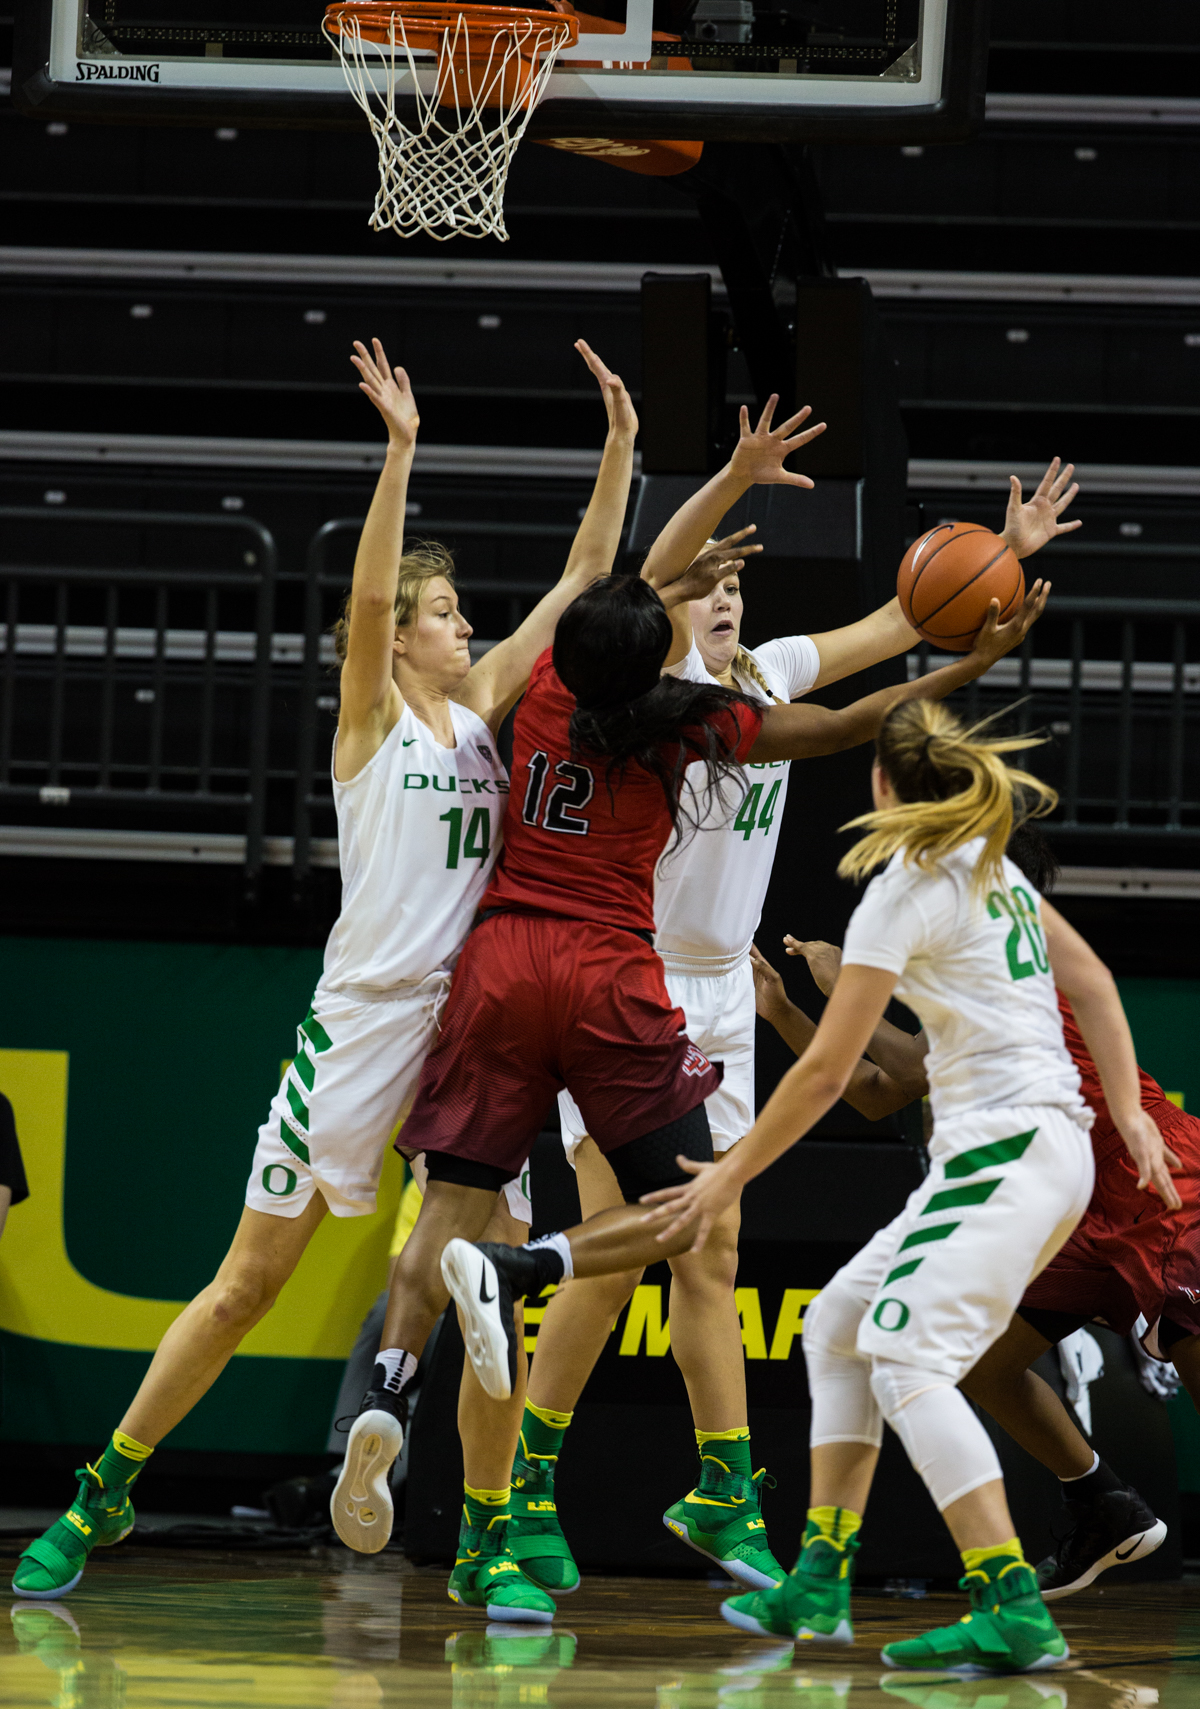 Lamar Cardinals forward Kiara Desamours (#12) attemps a layup as Ducks defenders Lydia Giomi (#14), Mallory McGwire (#44) and Sabrina Ionescu (#20) try to stop her. The Oregon Ducks Women's basketball team won their season opener against the Lamar Cardinals 84-67.  Photo by Austin Hicks, Oregon News Lab